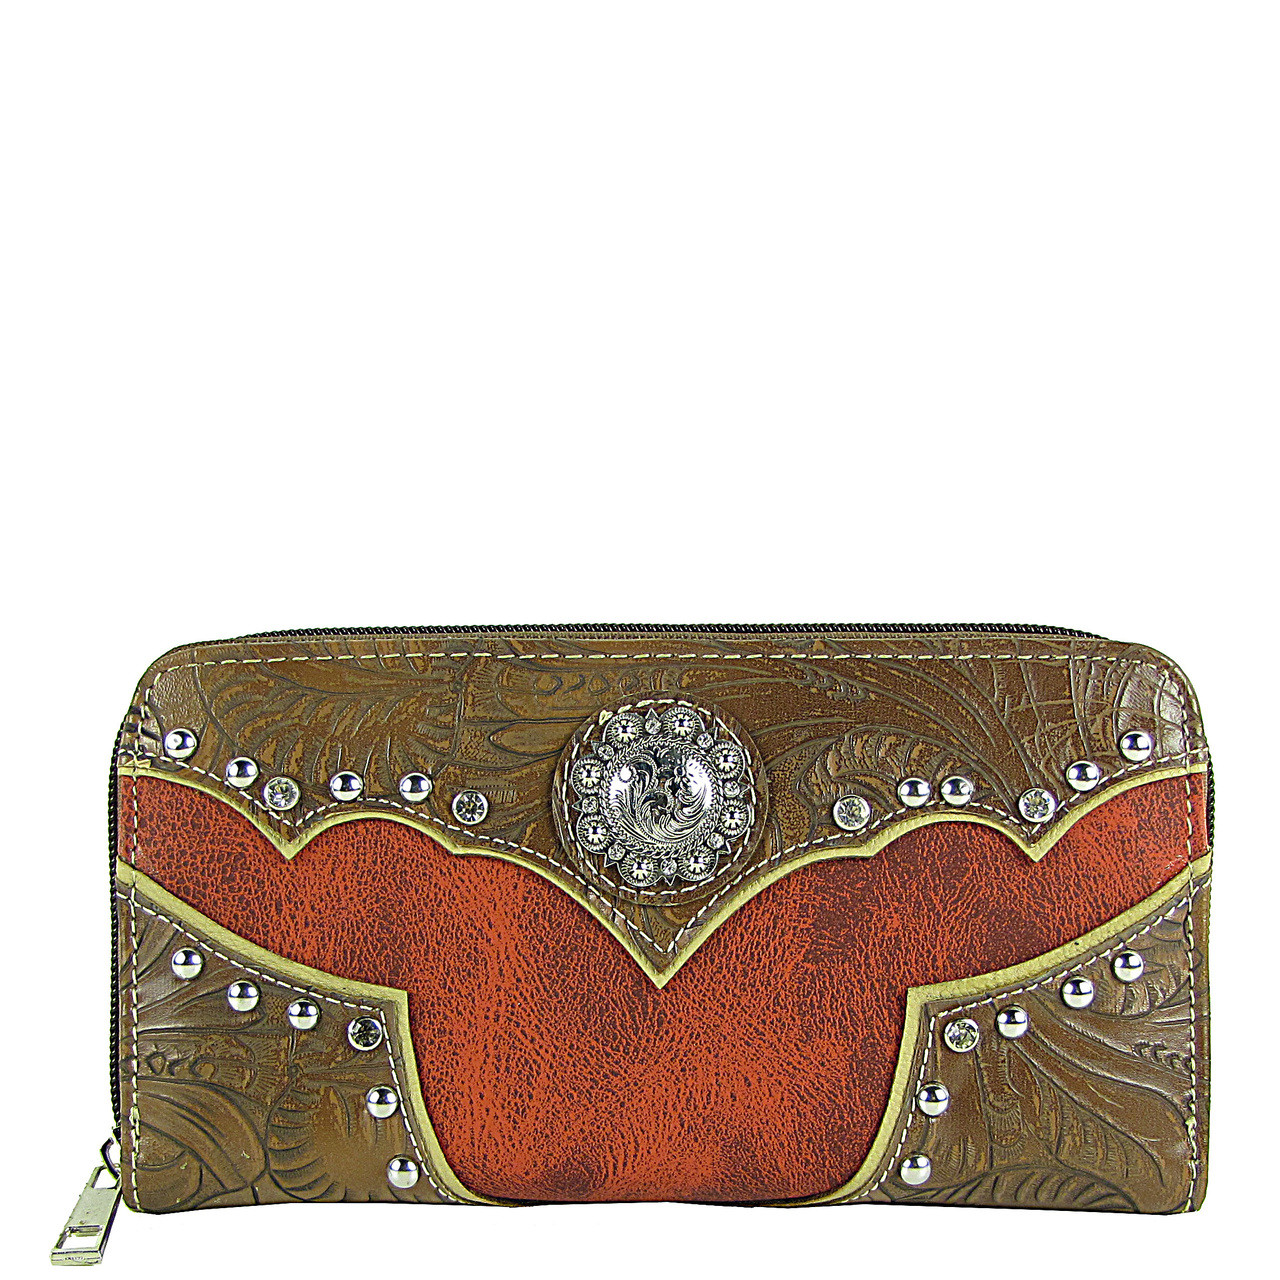 RED WESTERN STUDDED LOOK ZIPPER WALLET CB3-1202RED